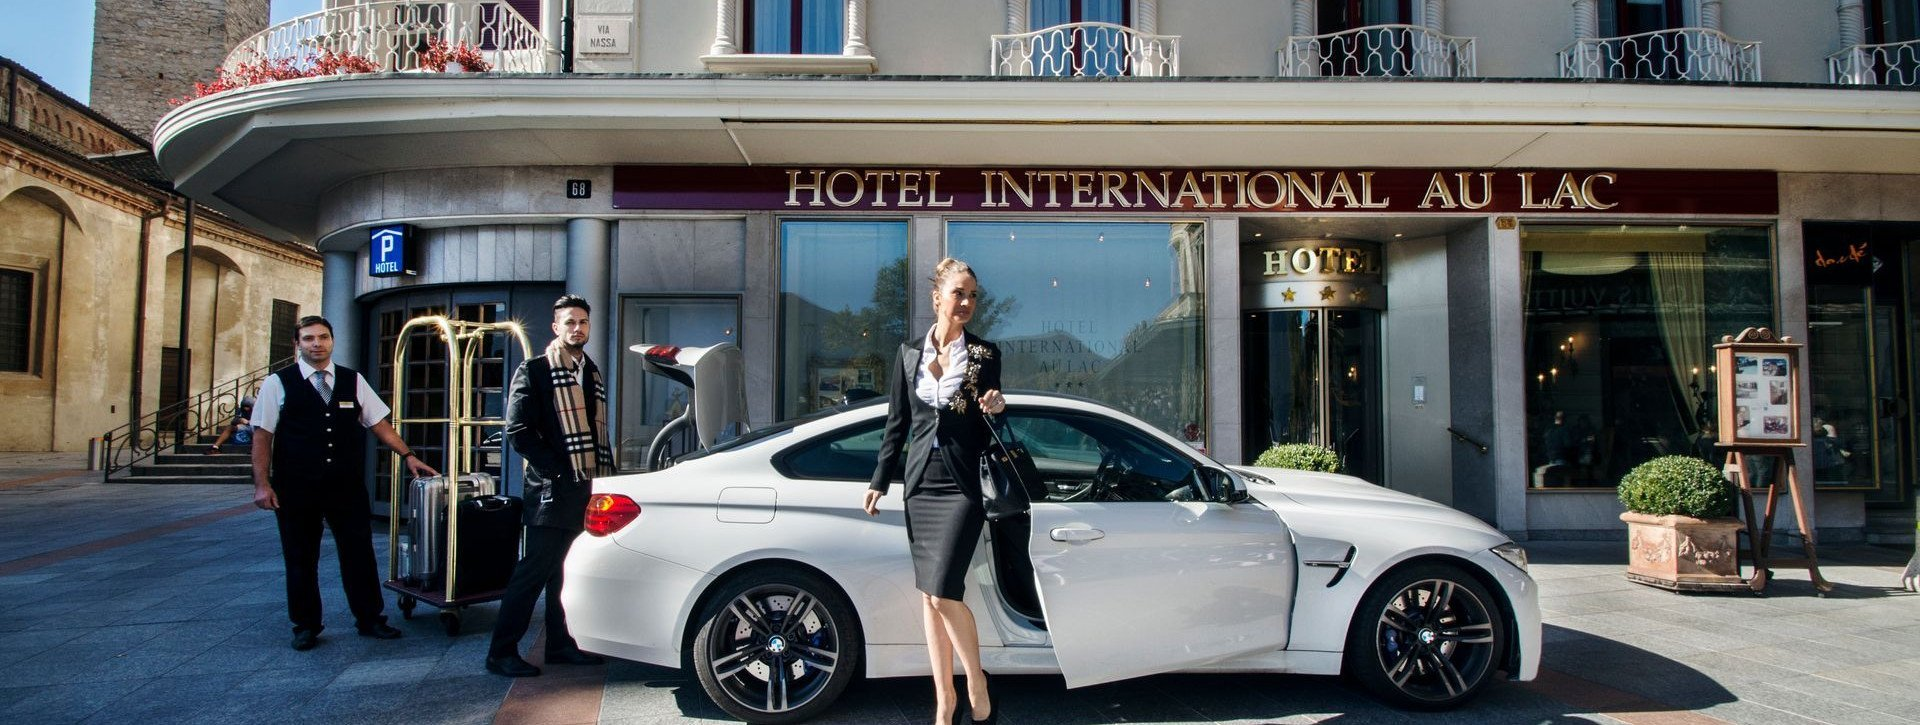 Guests of the International au Lac Historic Lakeside Hotel arrive in a white BMW